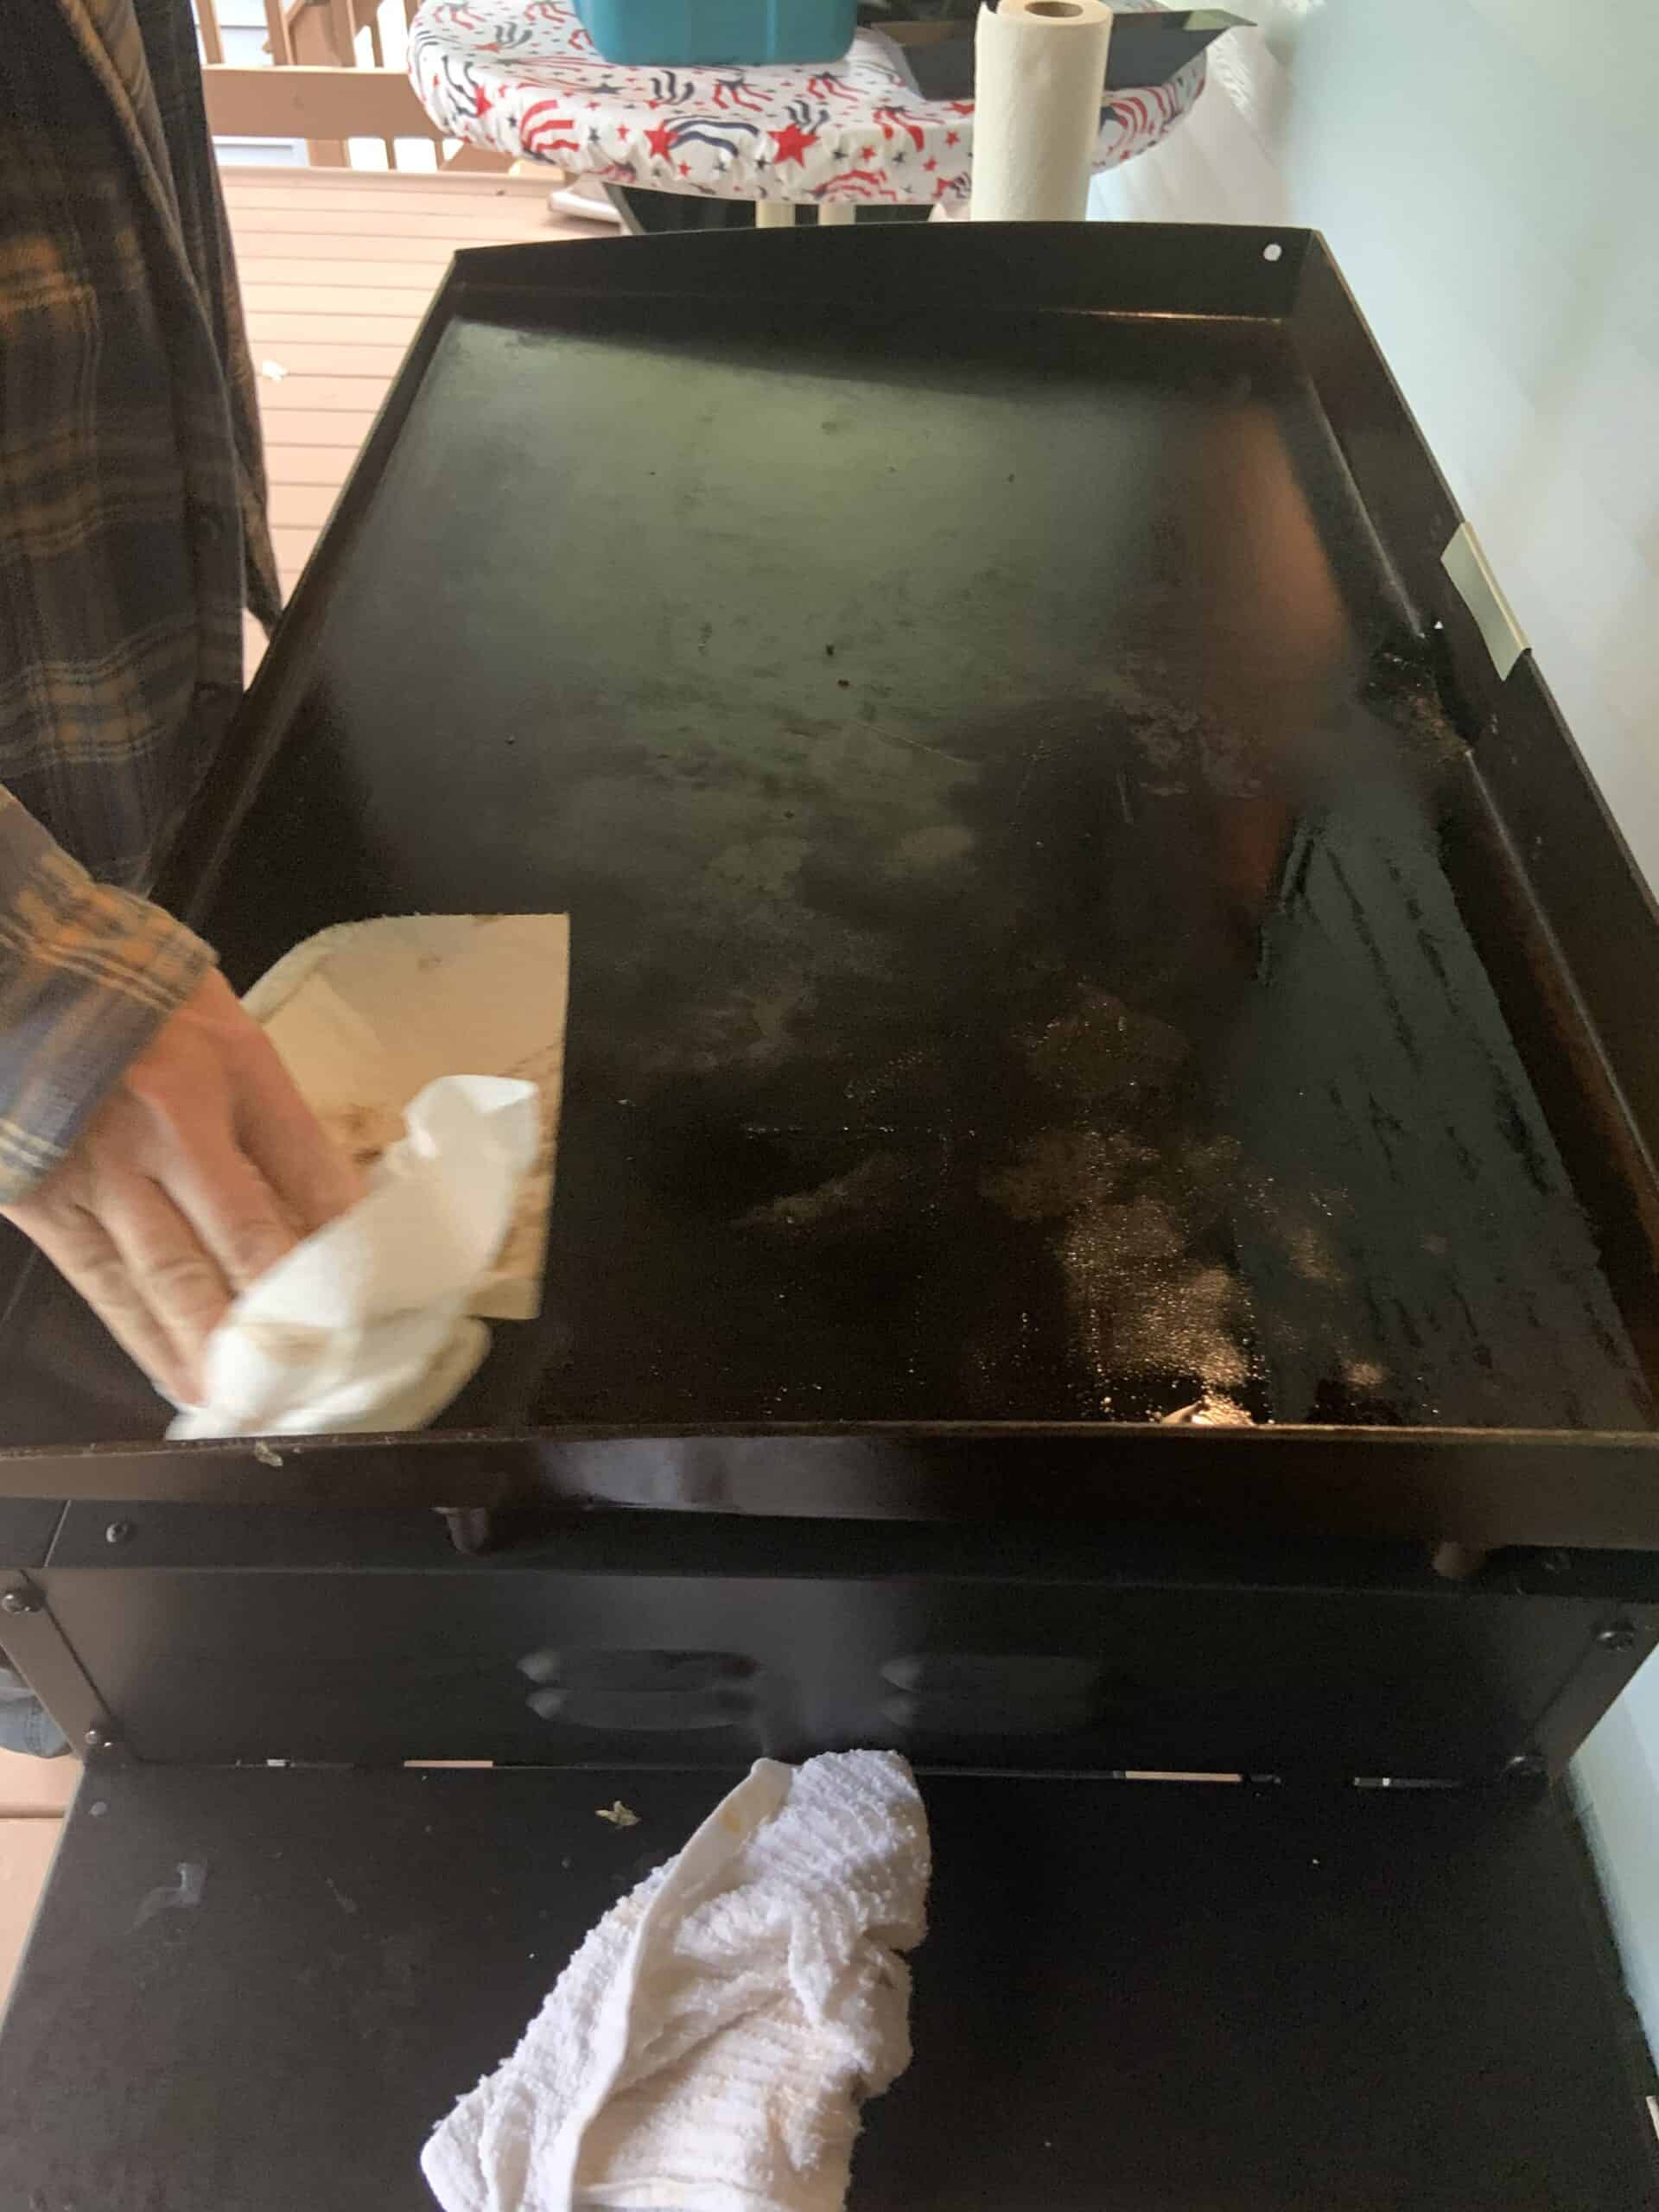 Cleaning/Seasoning Griddle Top with Oil and Paper Towel